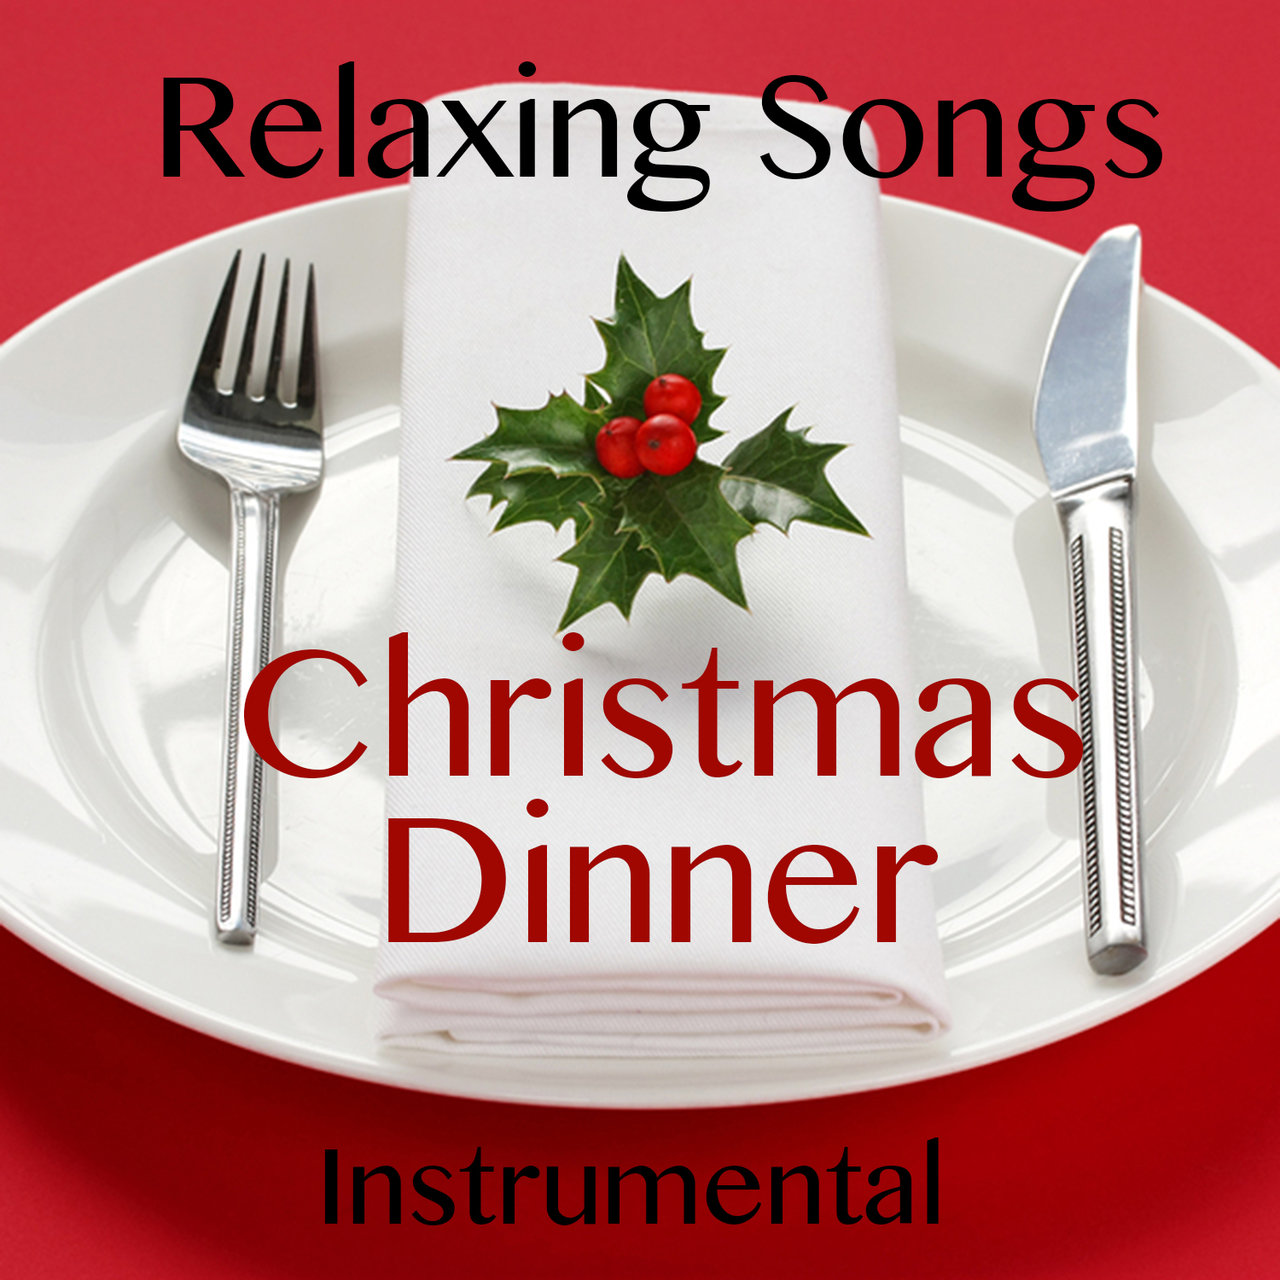 TIDAL: Listen to Relaxing Instrumental Songs for Christmas Dinner on ...